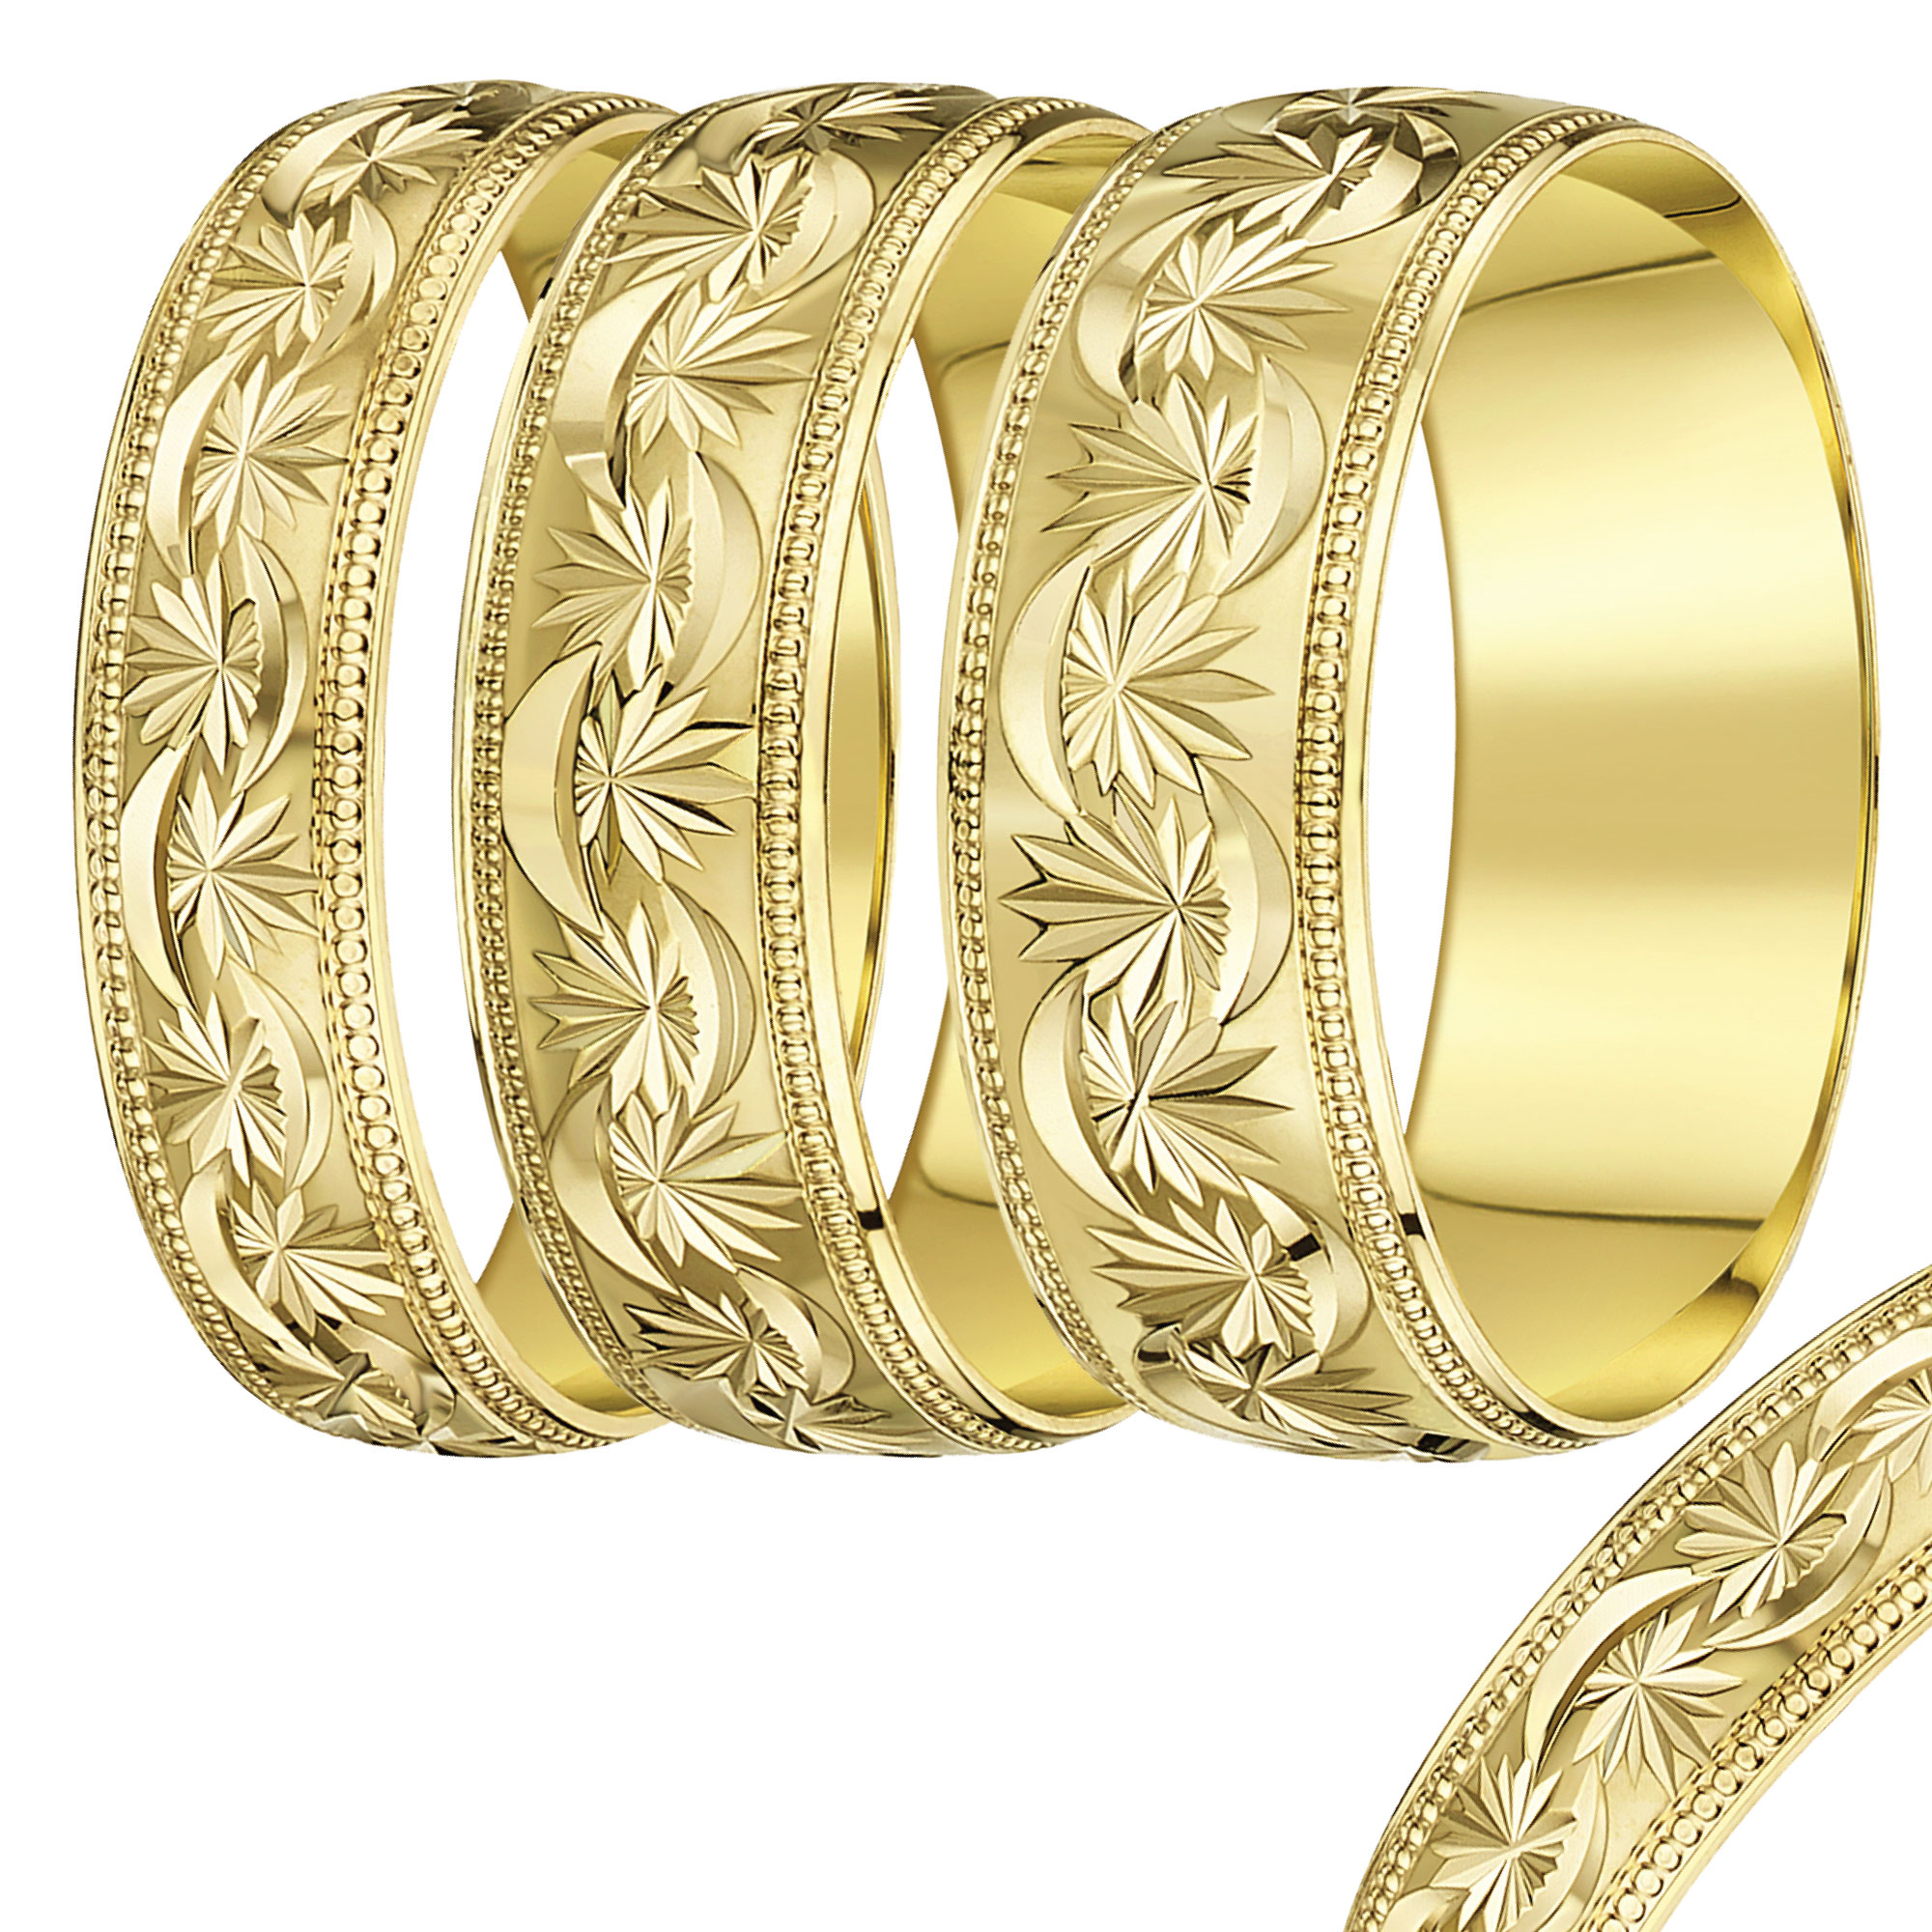 4mm-8mm Yellow Gold Star & Moon wedding rind band